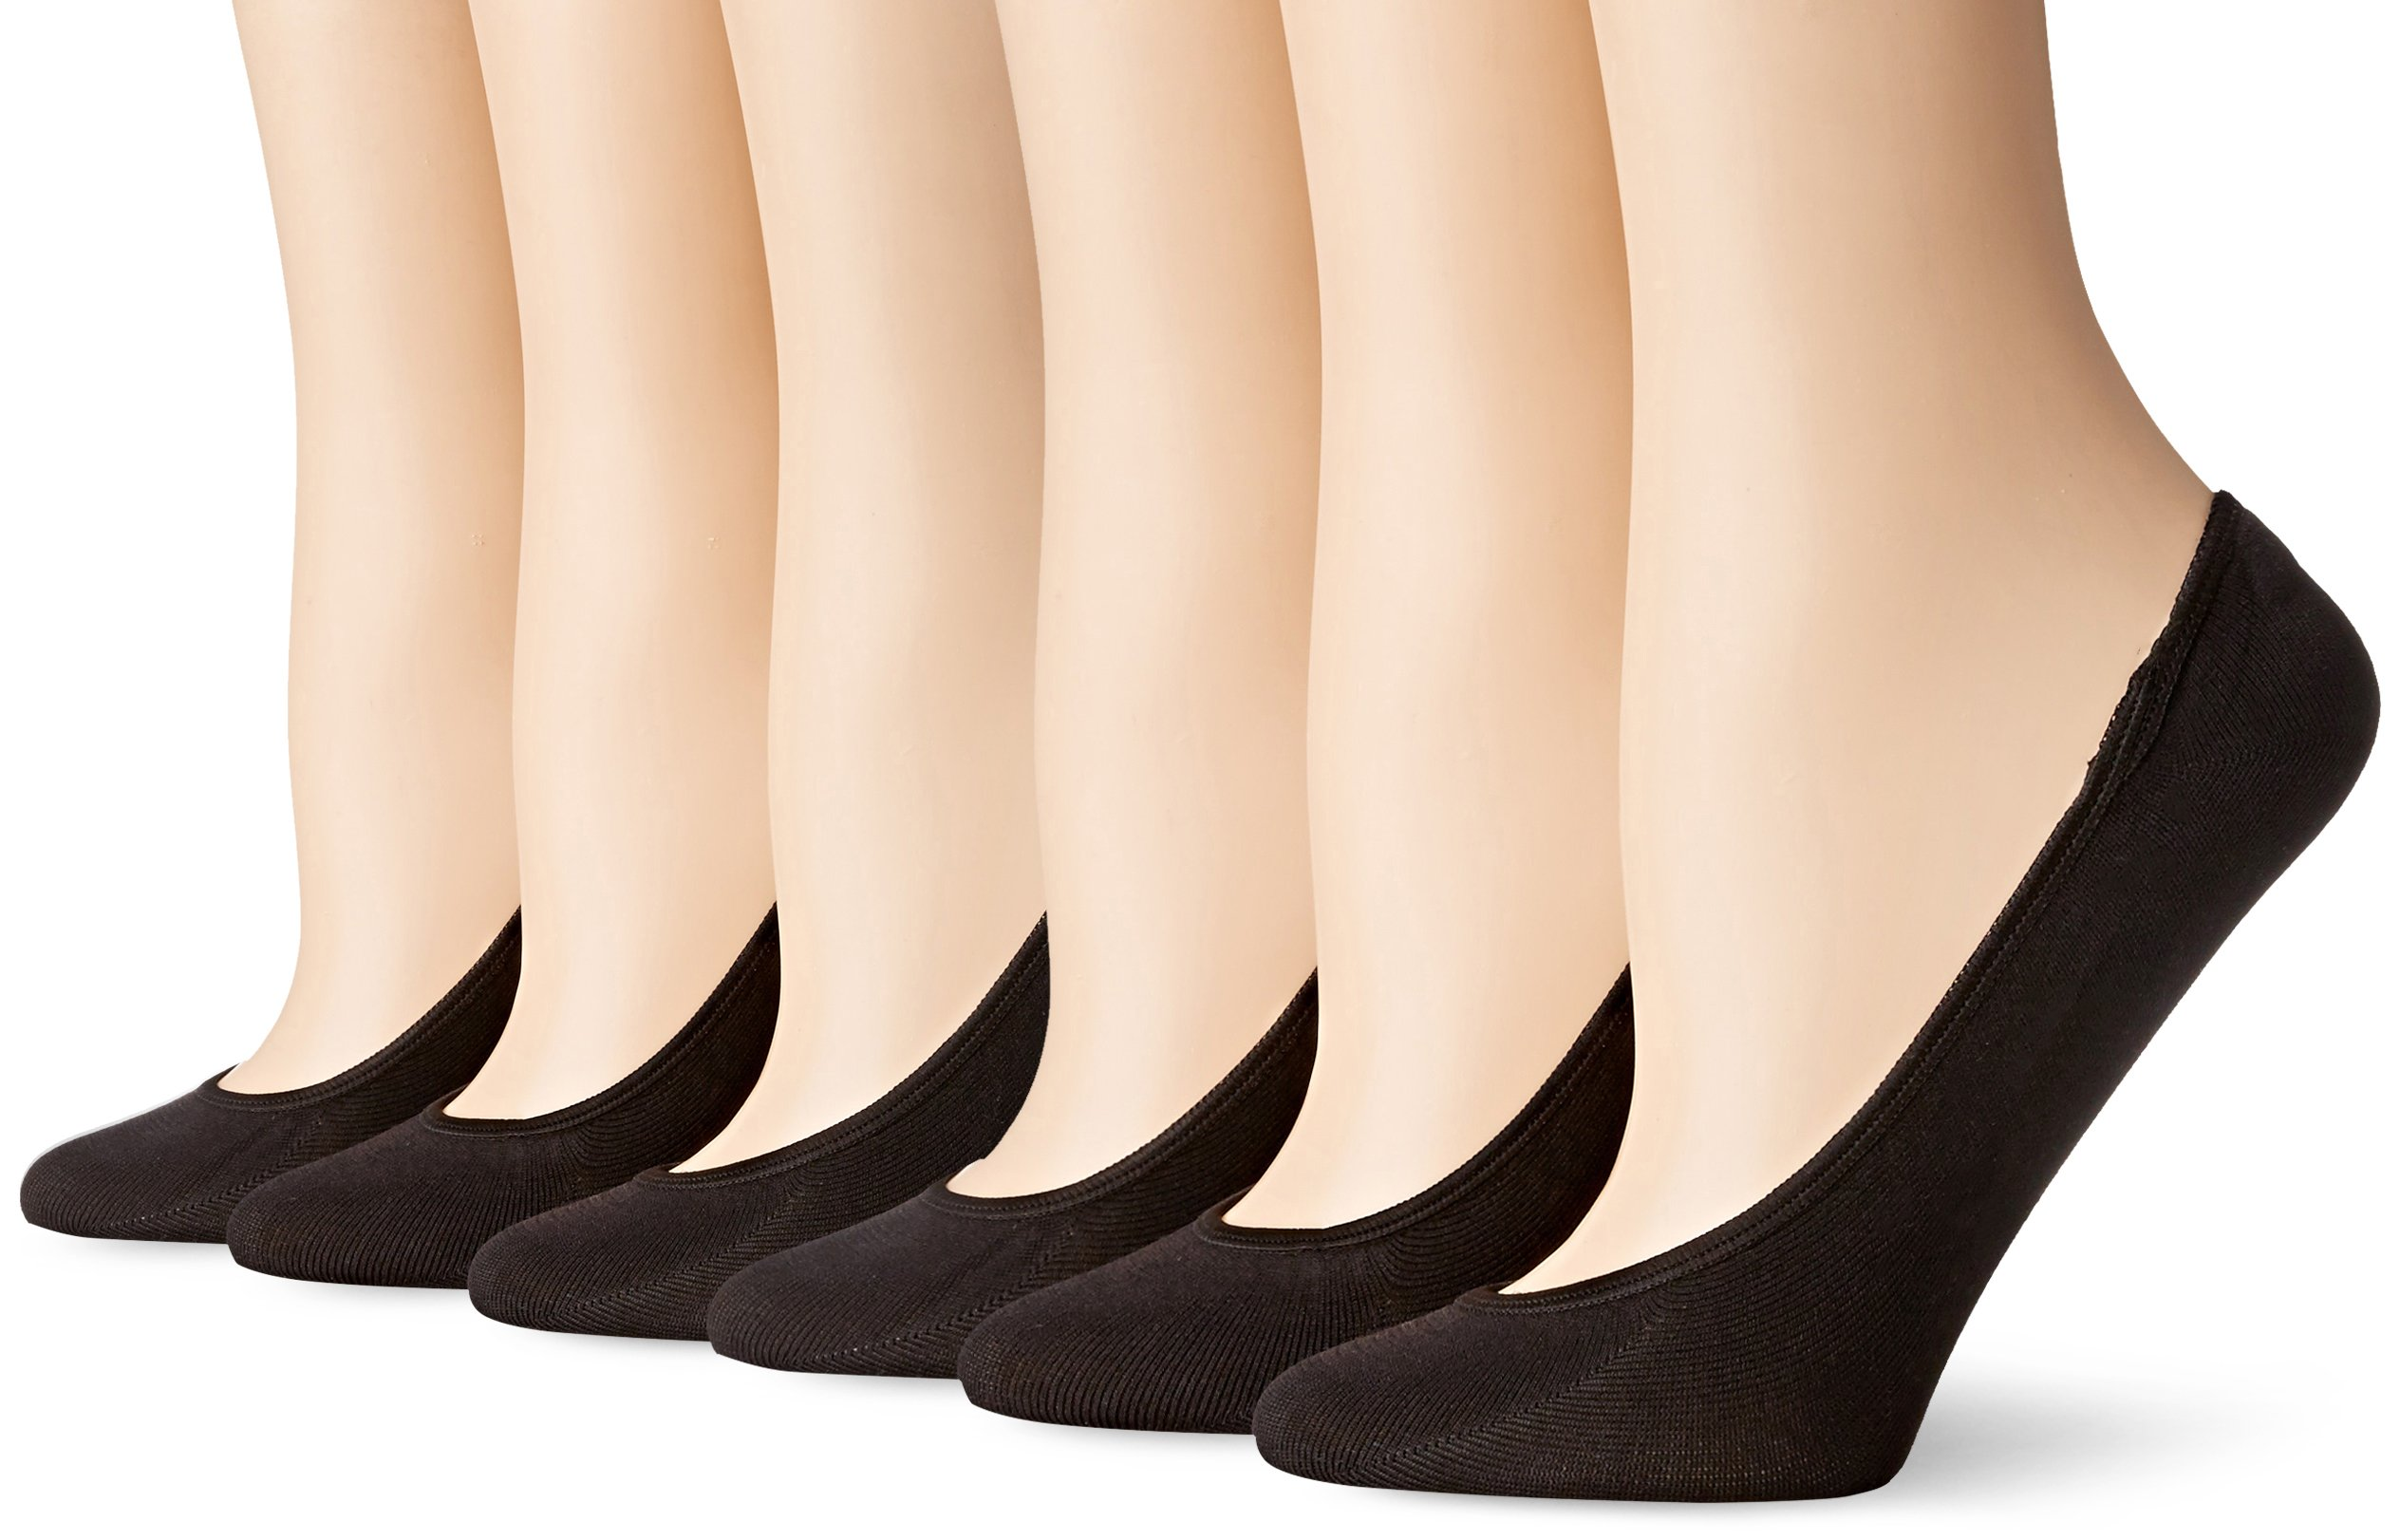 PEDS Women's Ultra Low Microfiber Liner with Gel Tab - 6 Pairs, Black, Shoe Size 4-7